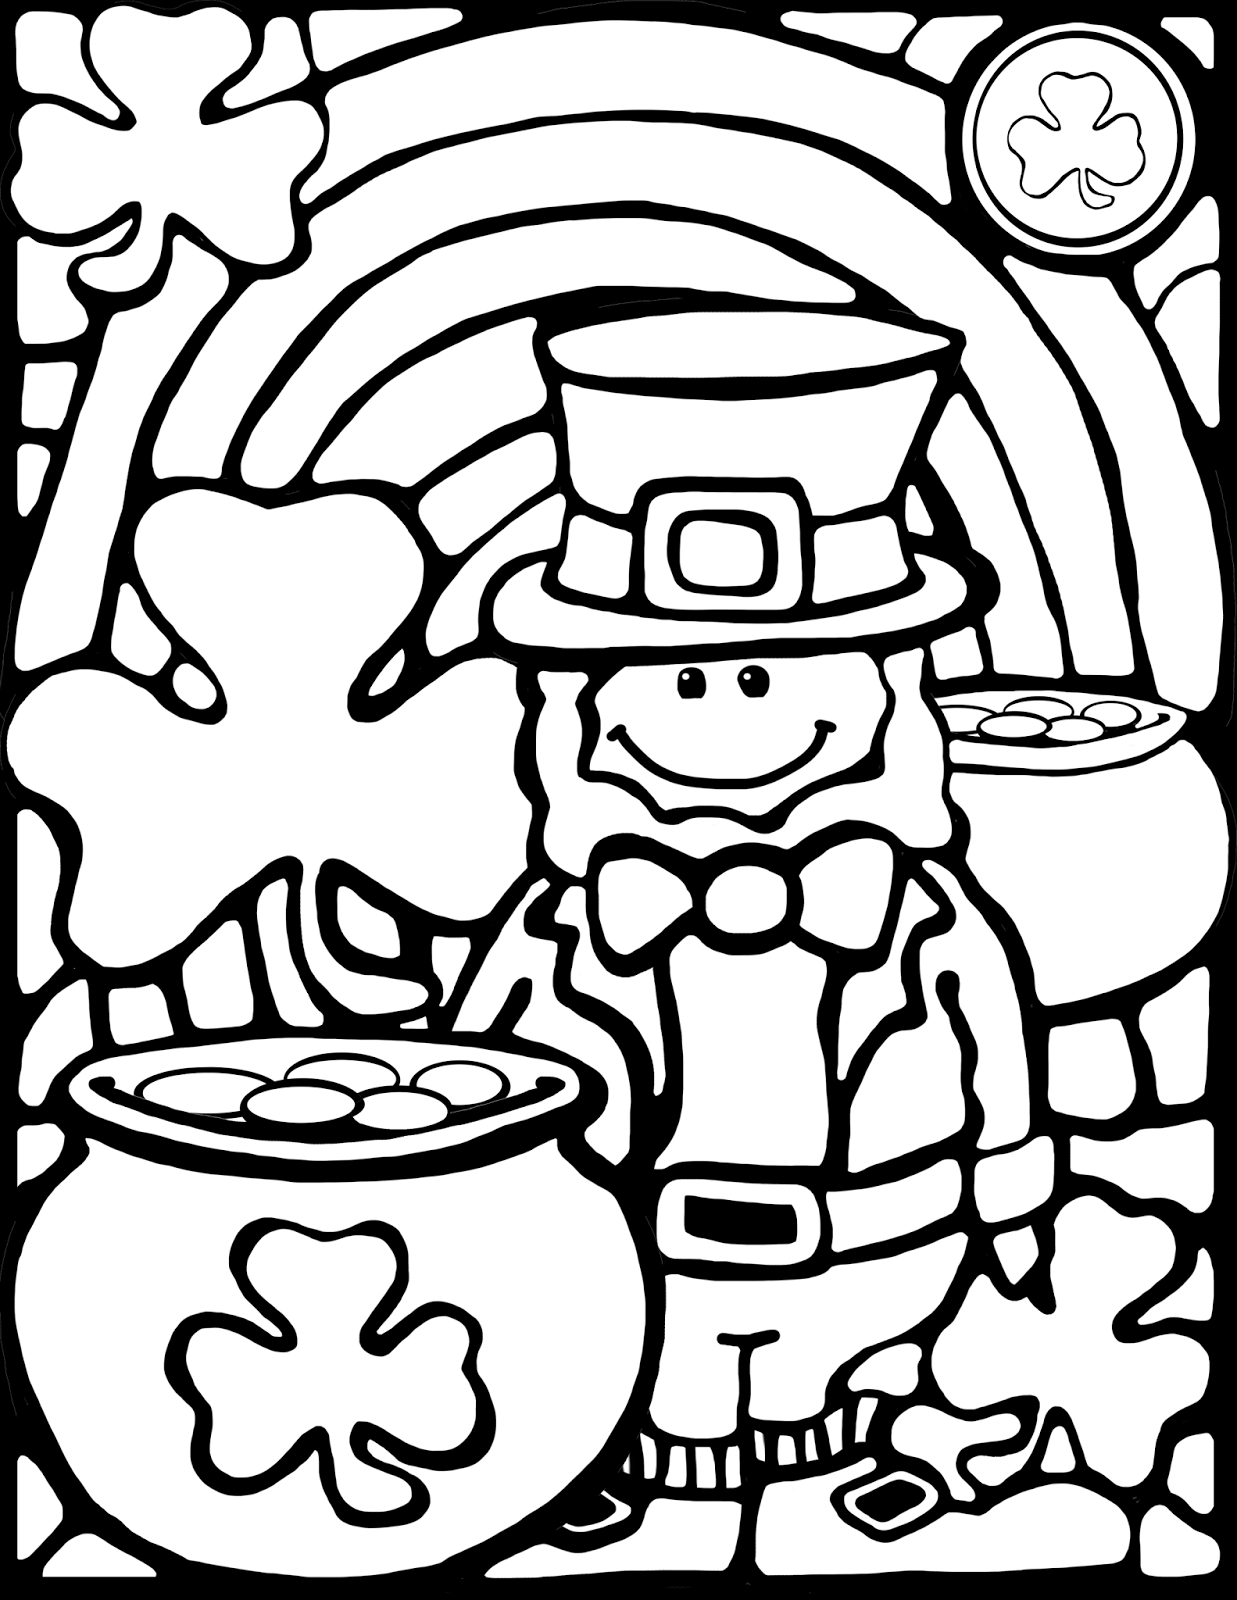 Handcuffs Coloring Pages At Getcolorings